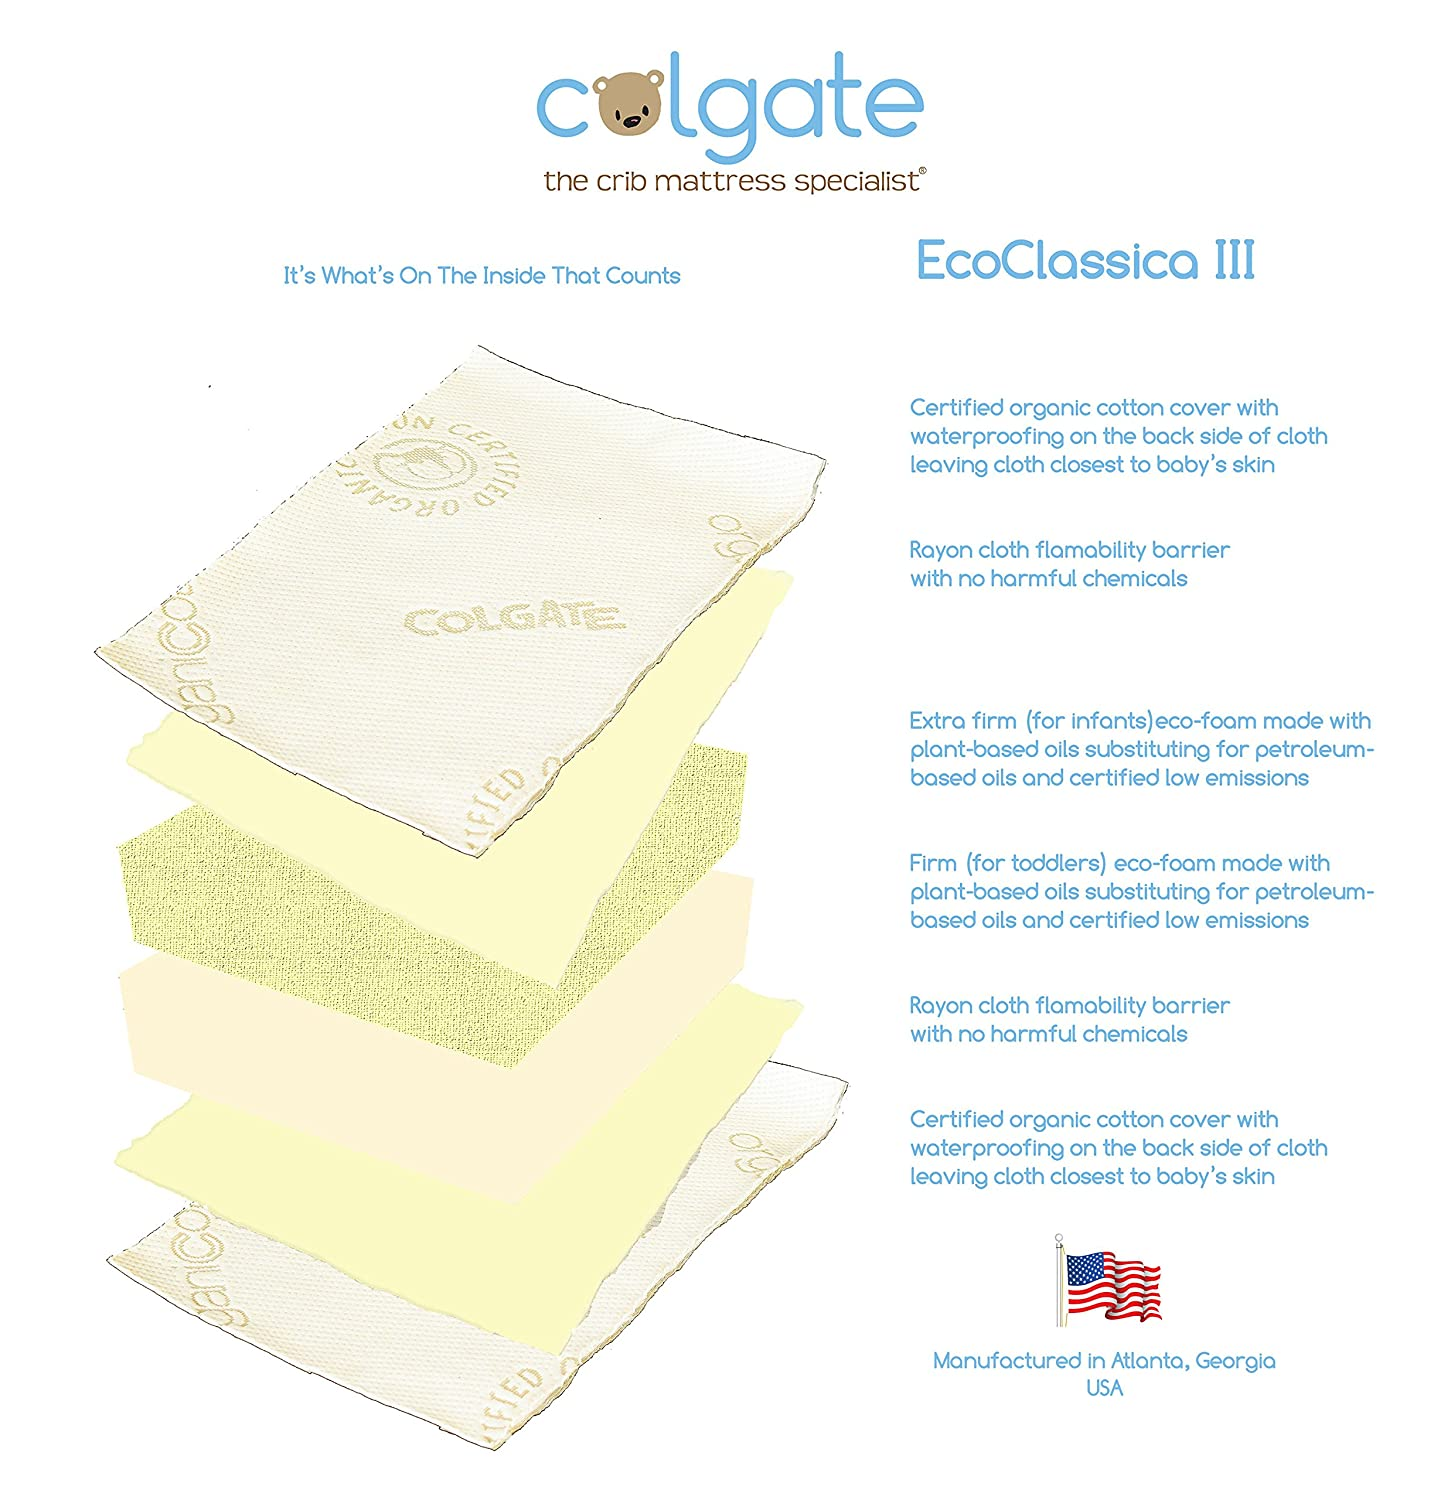 Used crib for sale atlanta - Amazon Com Colgate Eco Classica Iii Dual Firmness Eco Friendlier Crib Mattress Organic Cotton Cover Baby